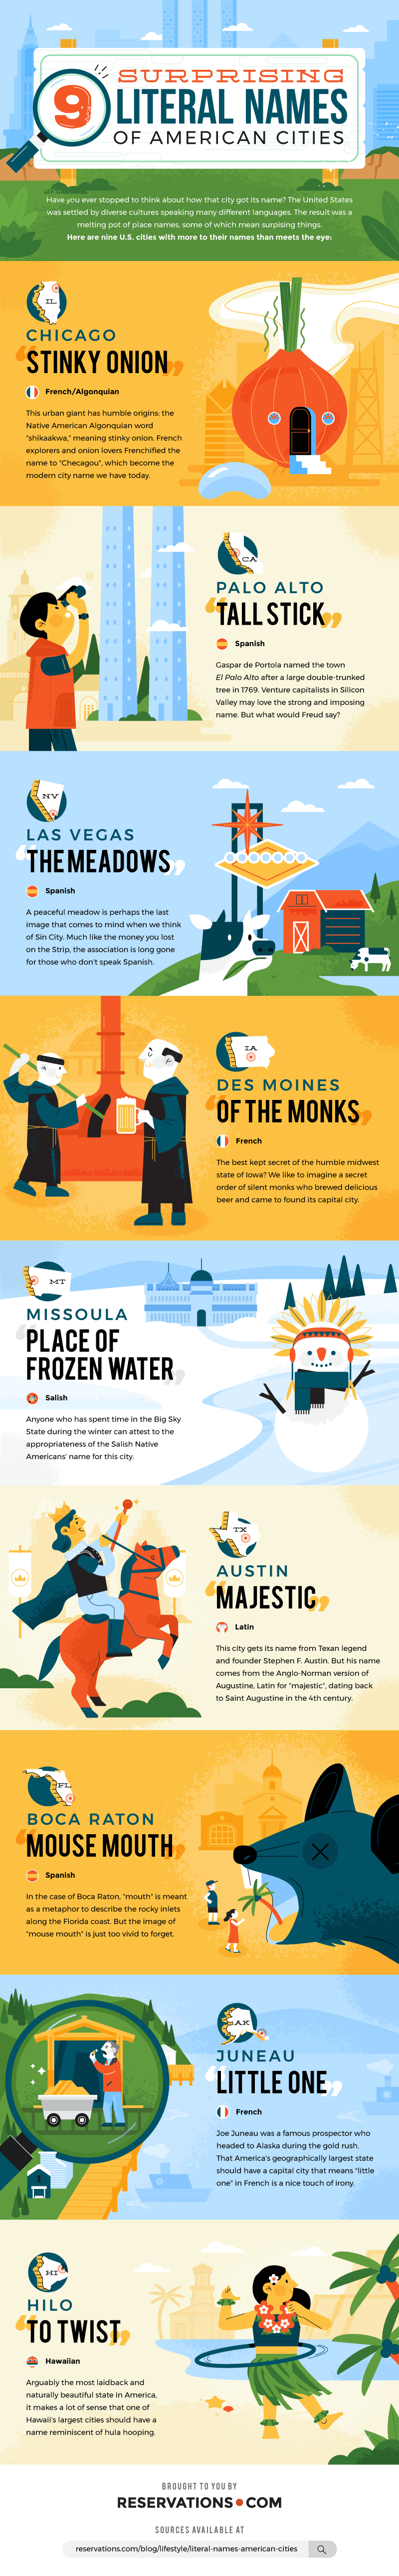 9 Surprising Literal Names of American Cities infographic